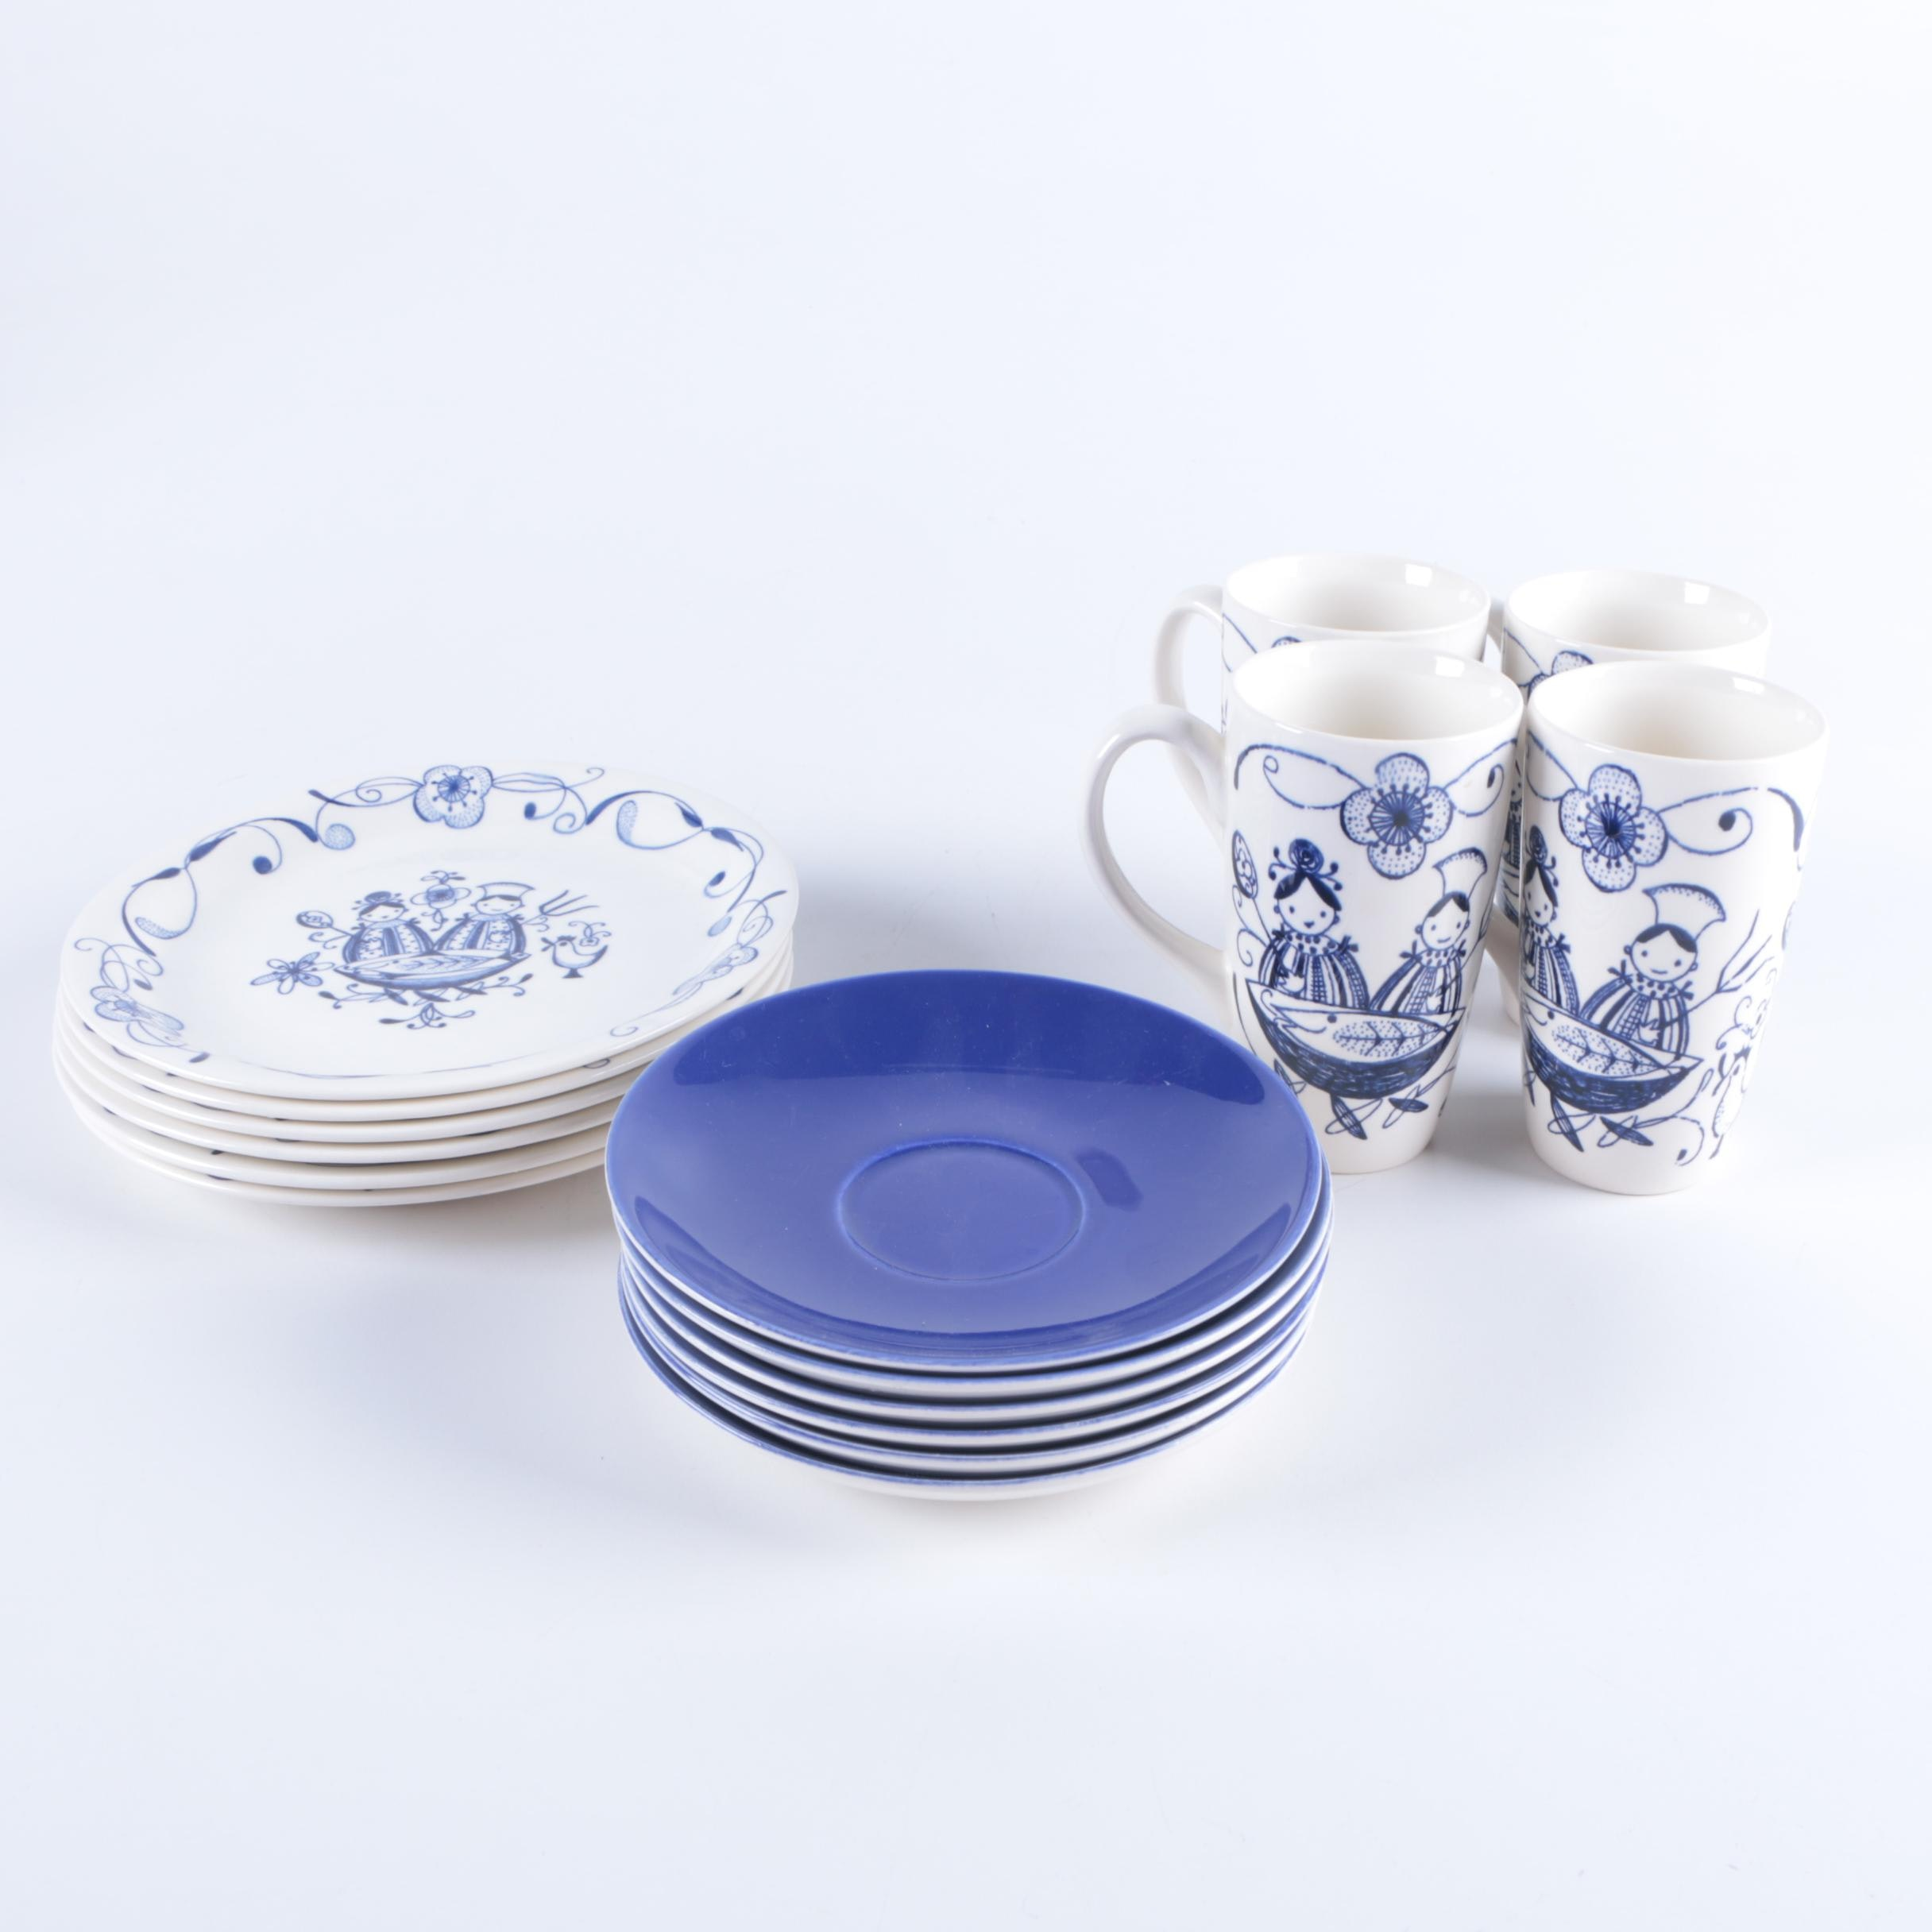 1952-79 Stavangerflint Earthenware Tableware